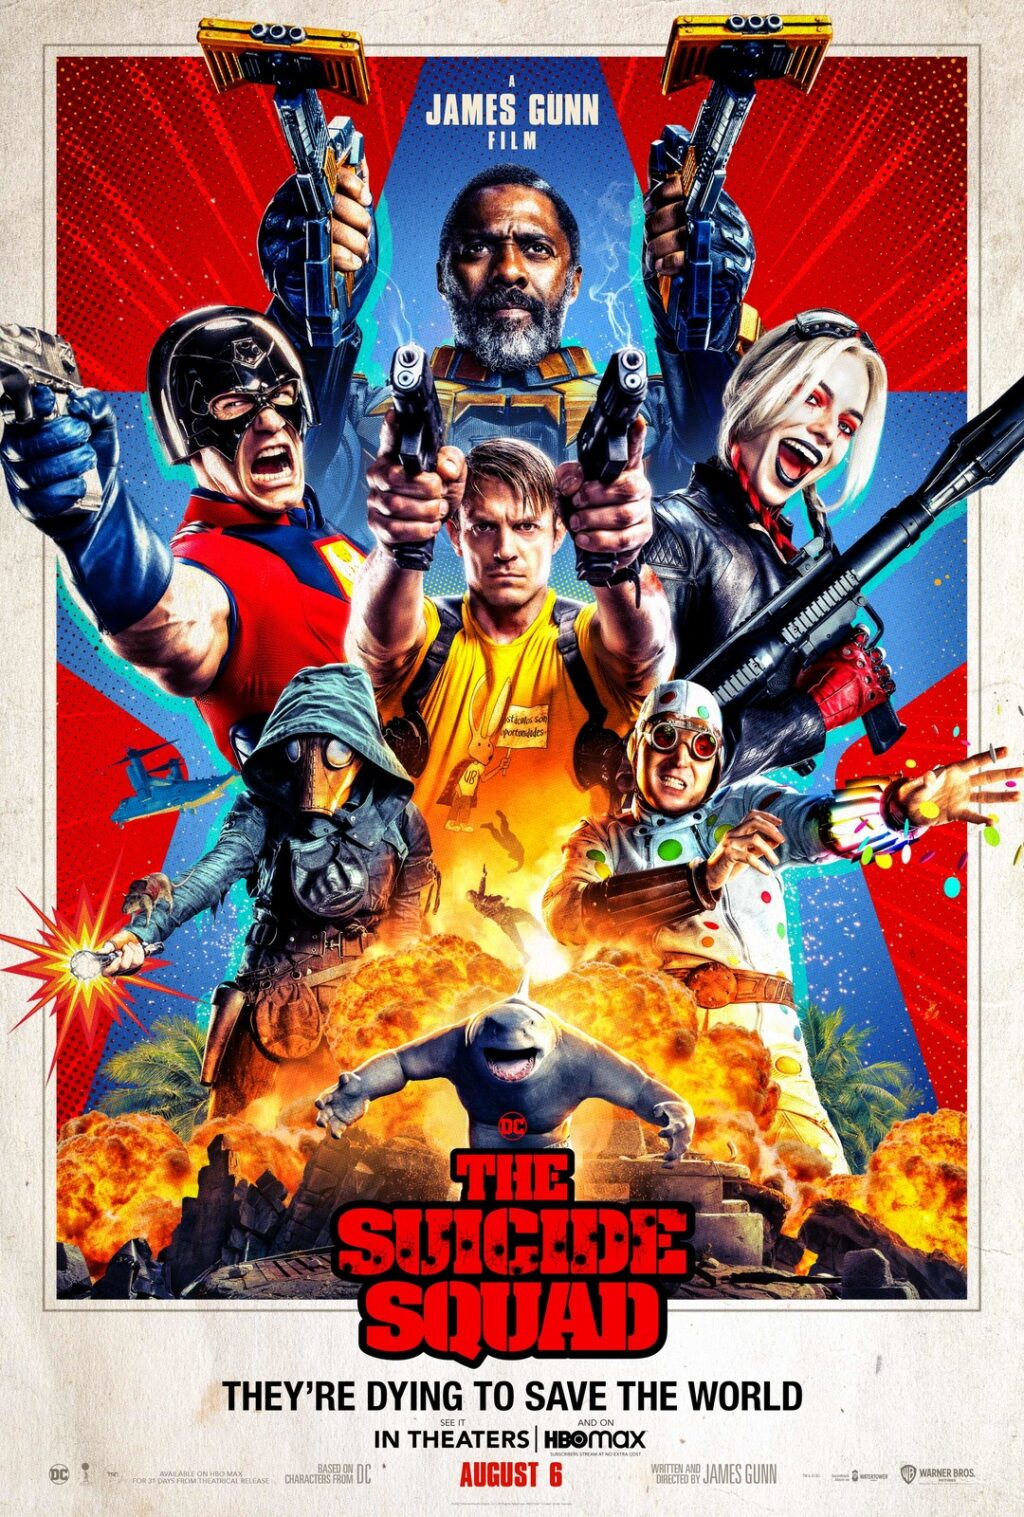 the suicide squad poster image 1024x1517 - THE SUICIDE SQUAD Review - James Gunn Delivers An Instant DCEU Classic